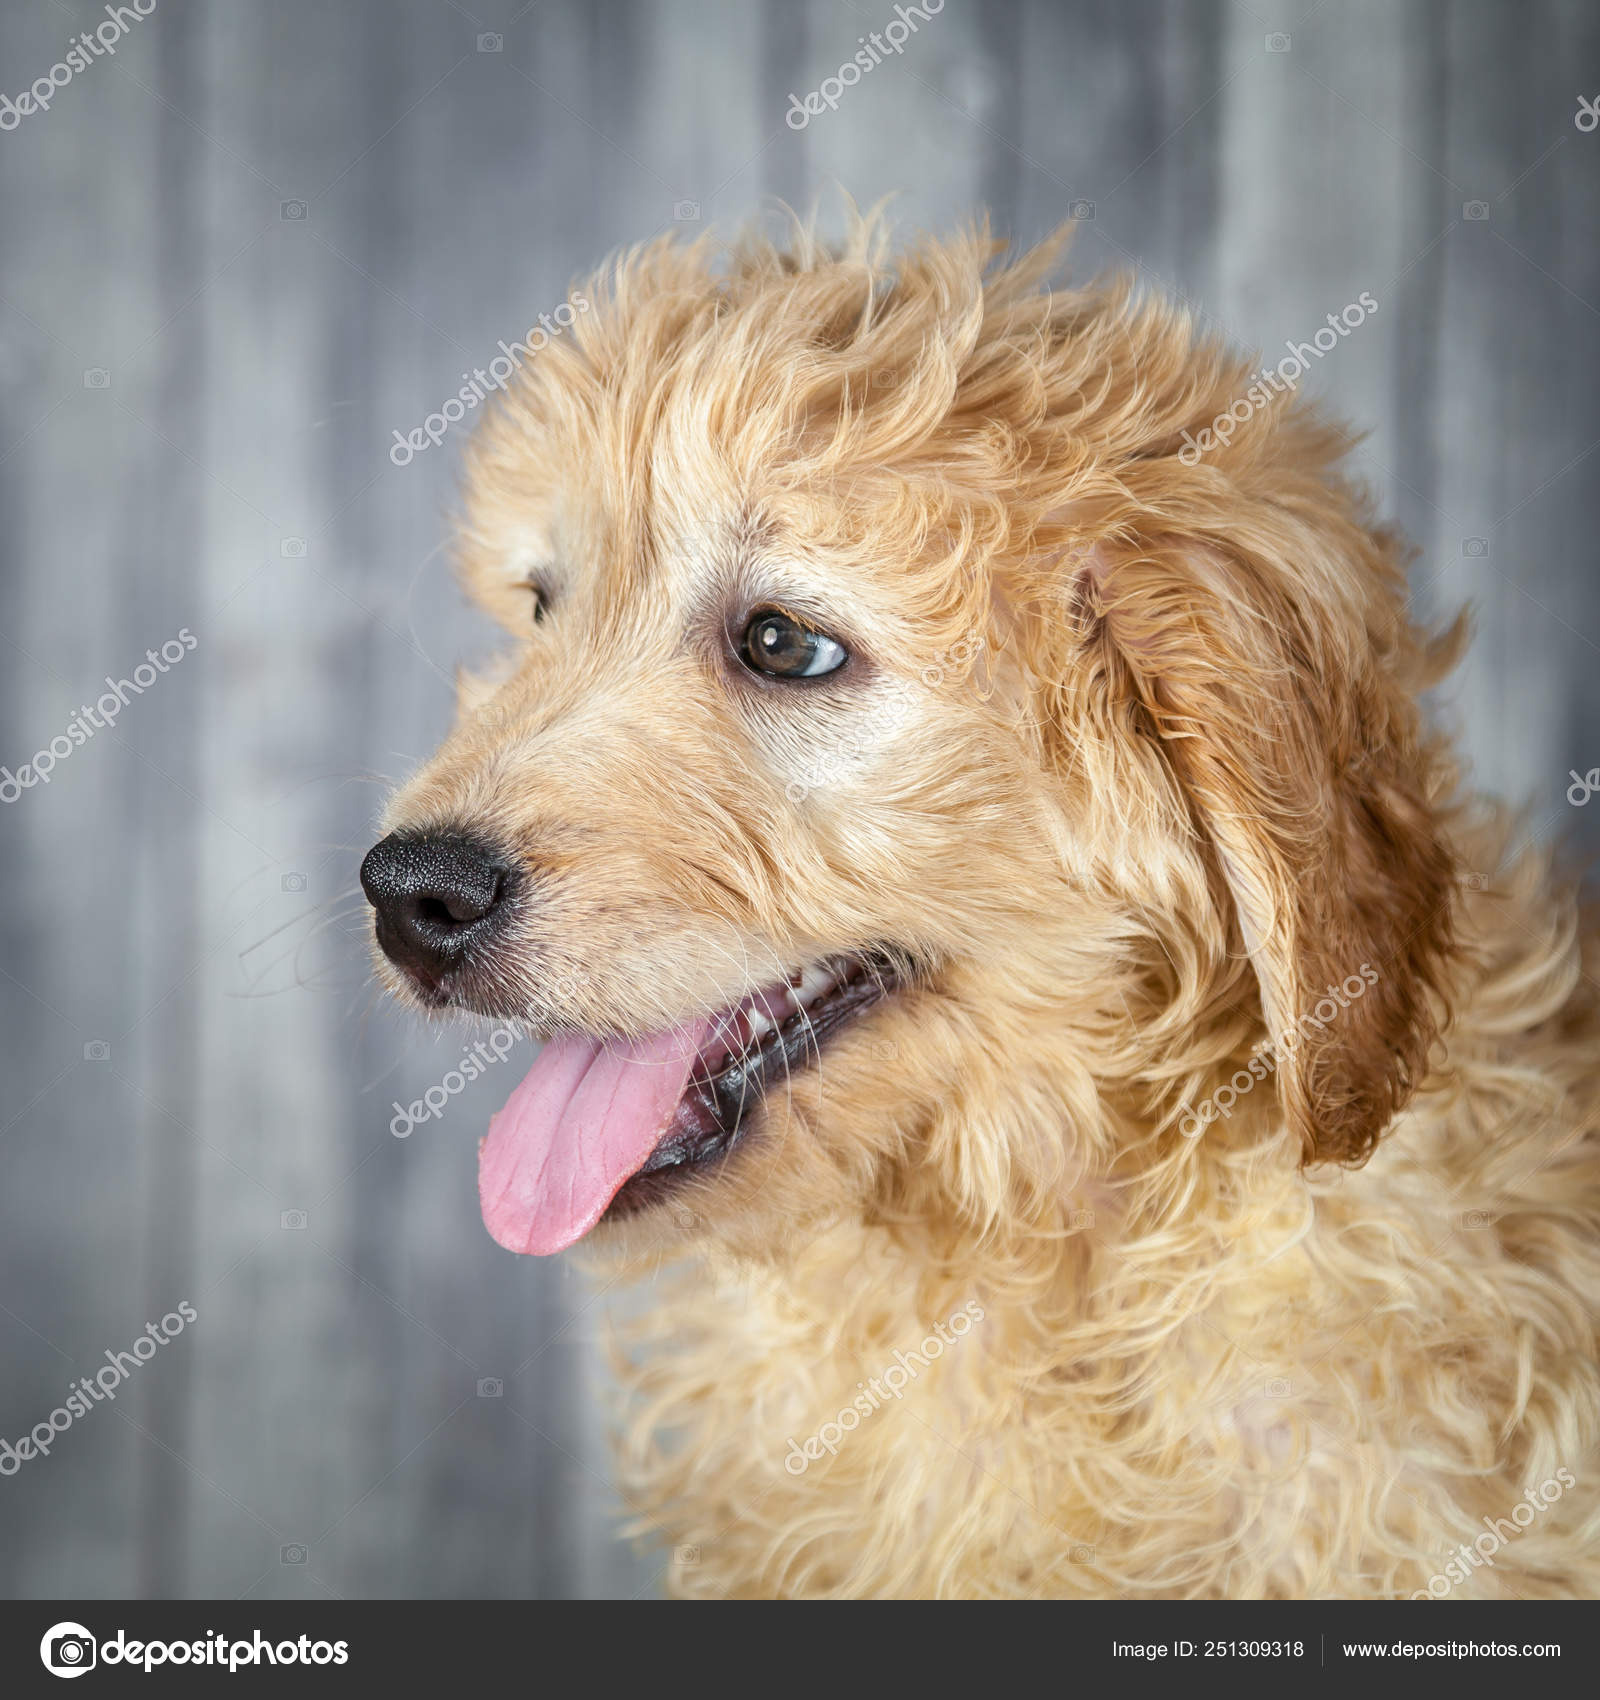 Sweet Adorable Goldendoodle Puppy Stock Photo C 260philip1 251309318